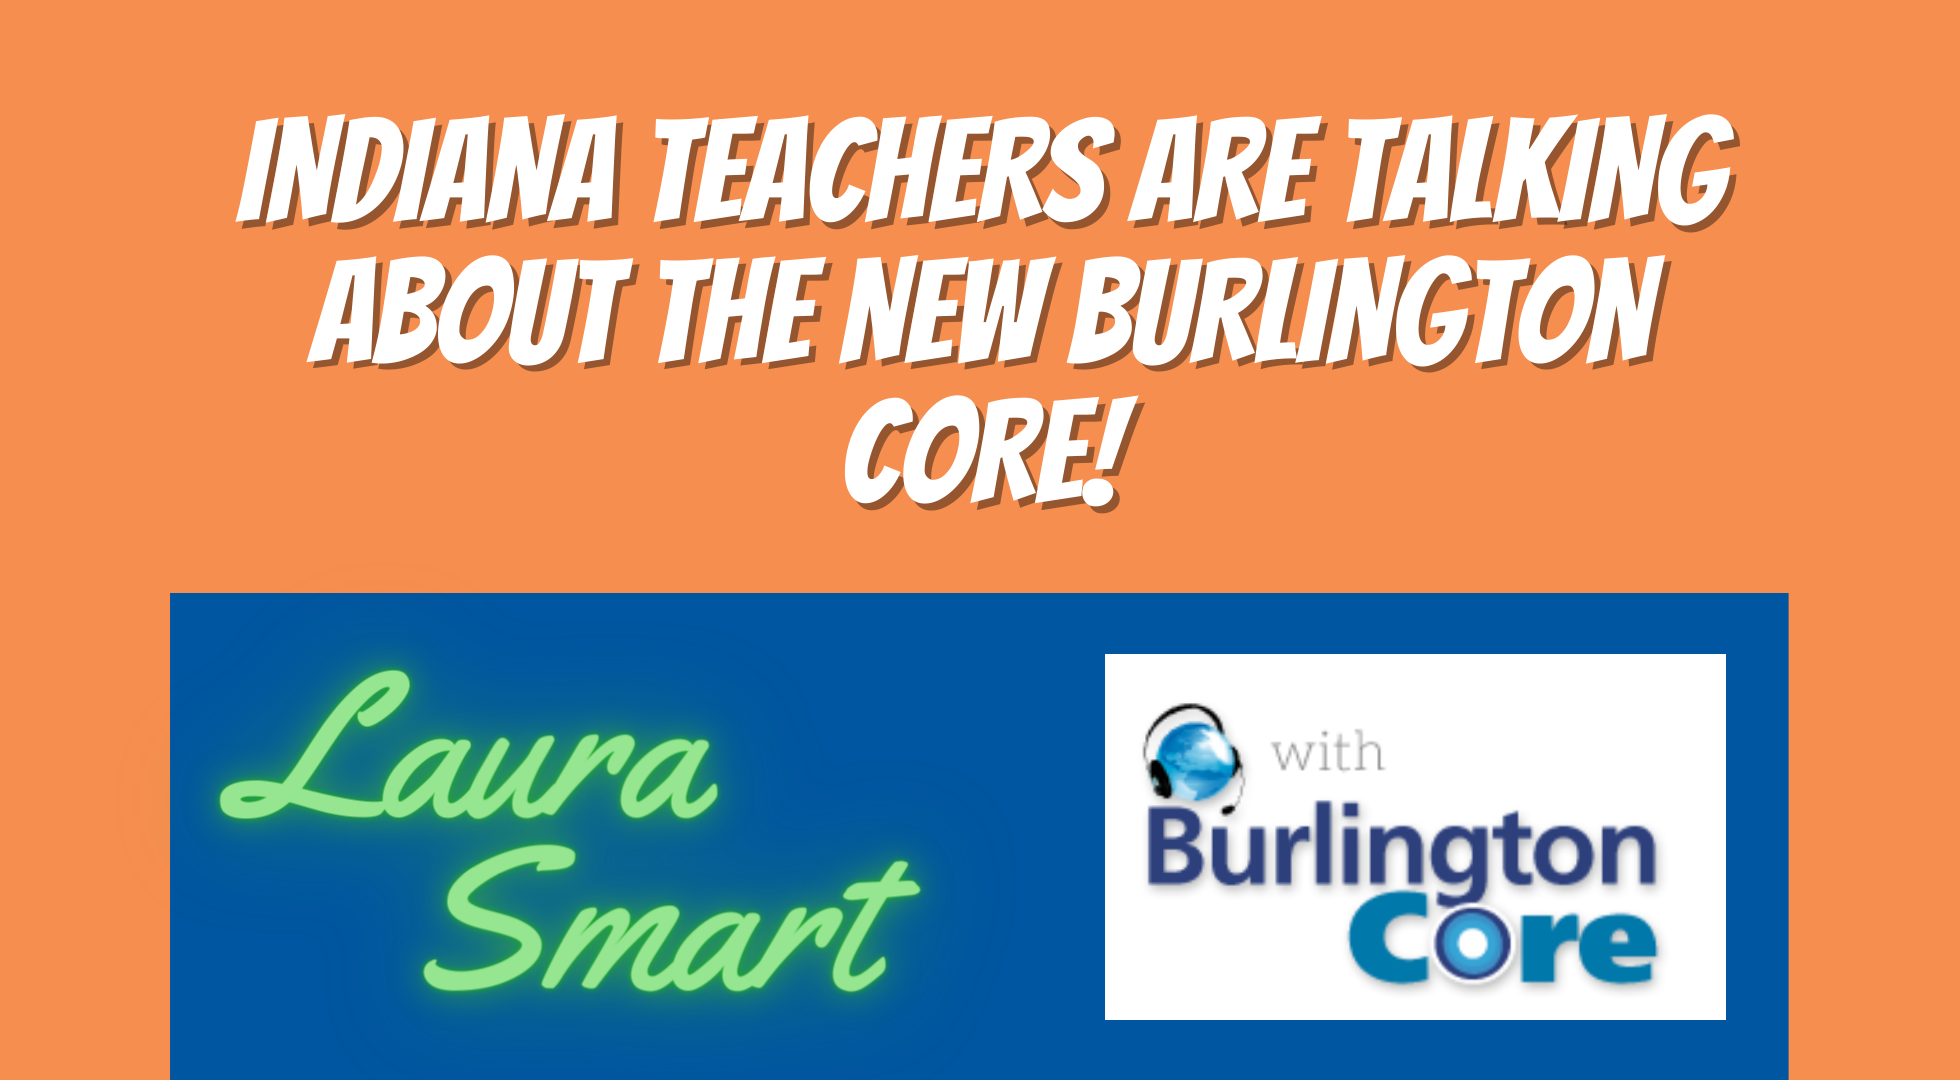 Indiana Teachers are talking about the NEW Burlington Core!